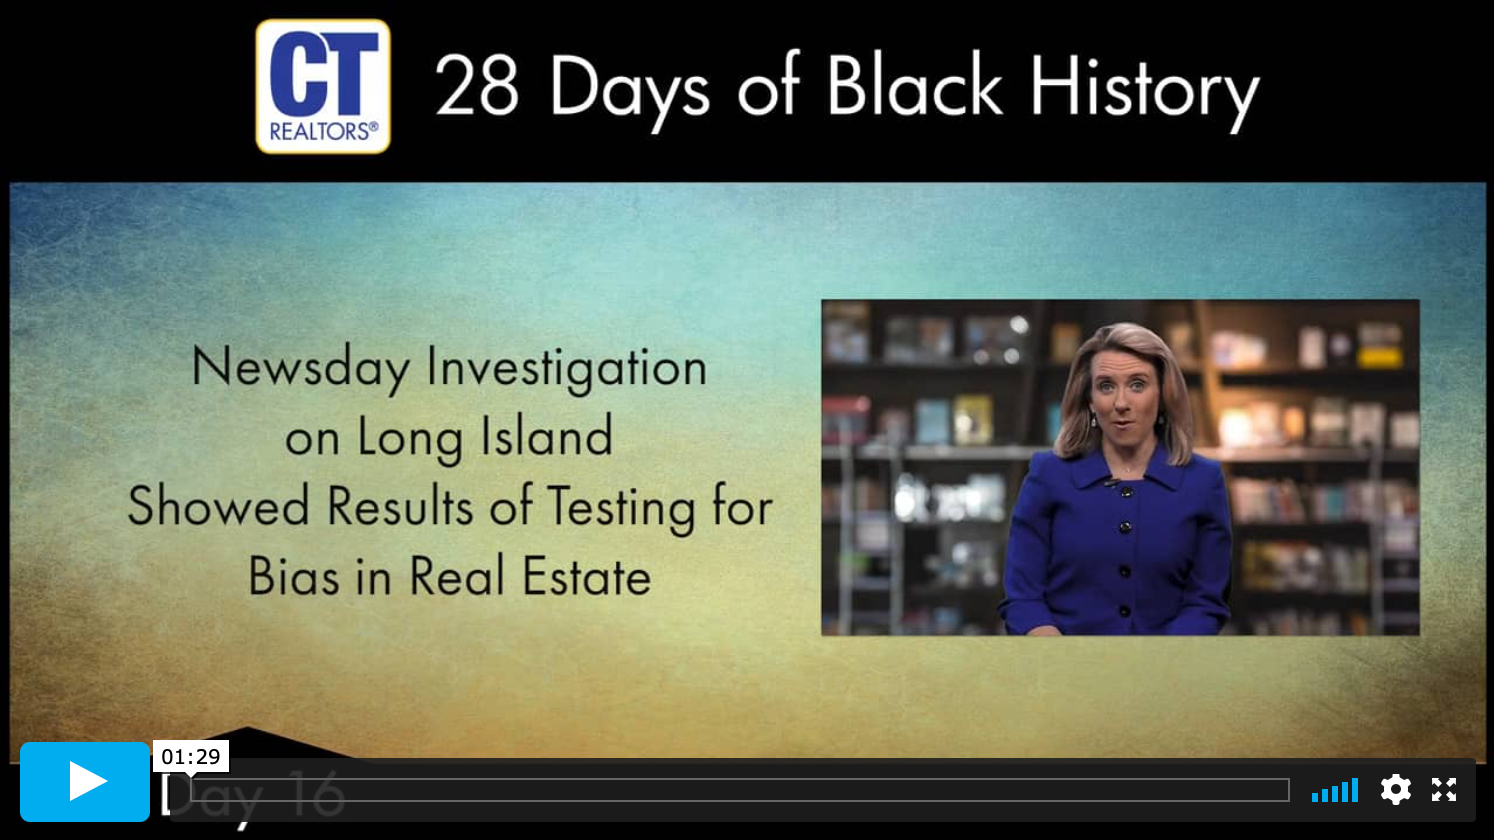 Video - 28 Days of Black History Day 16